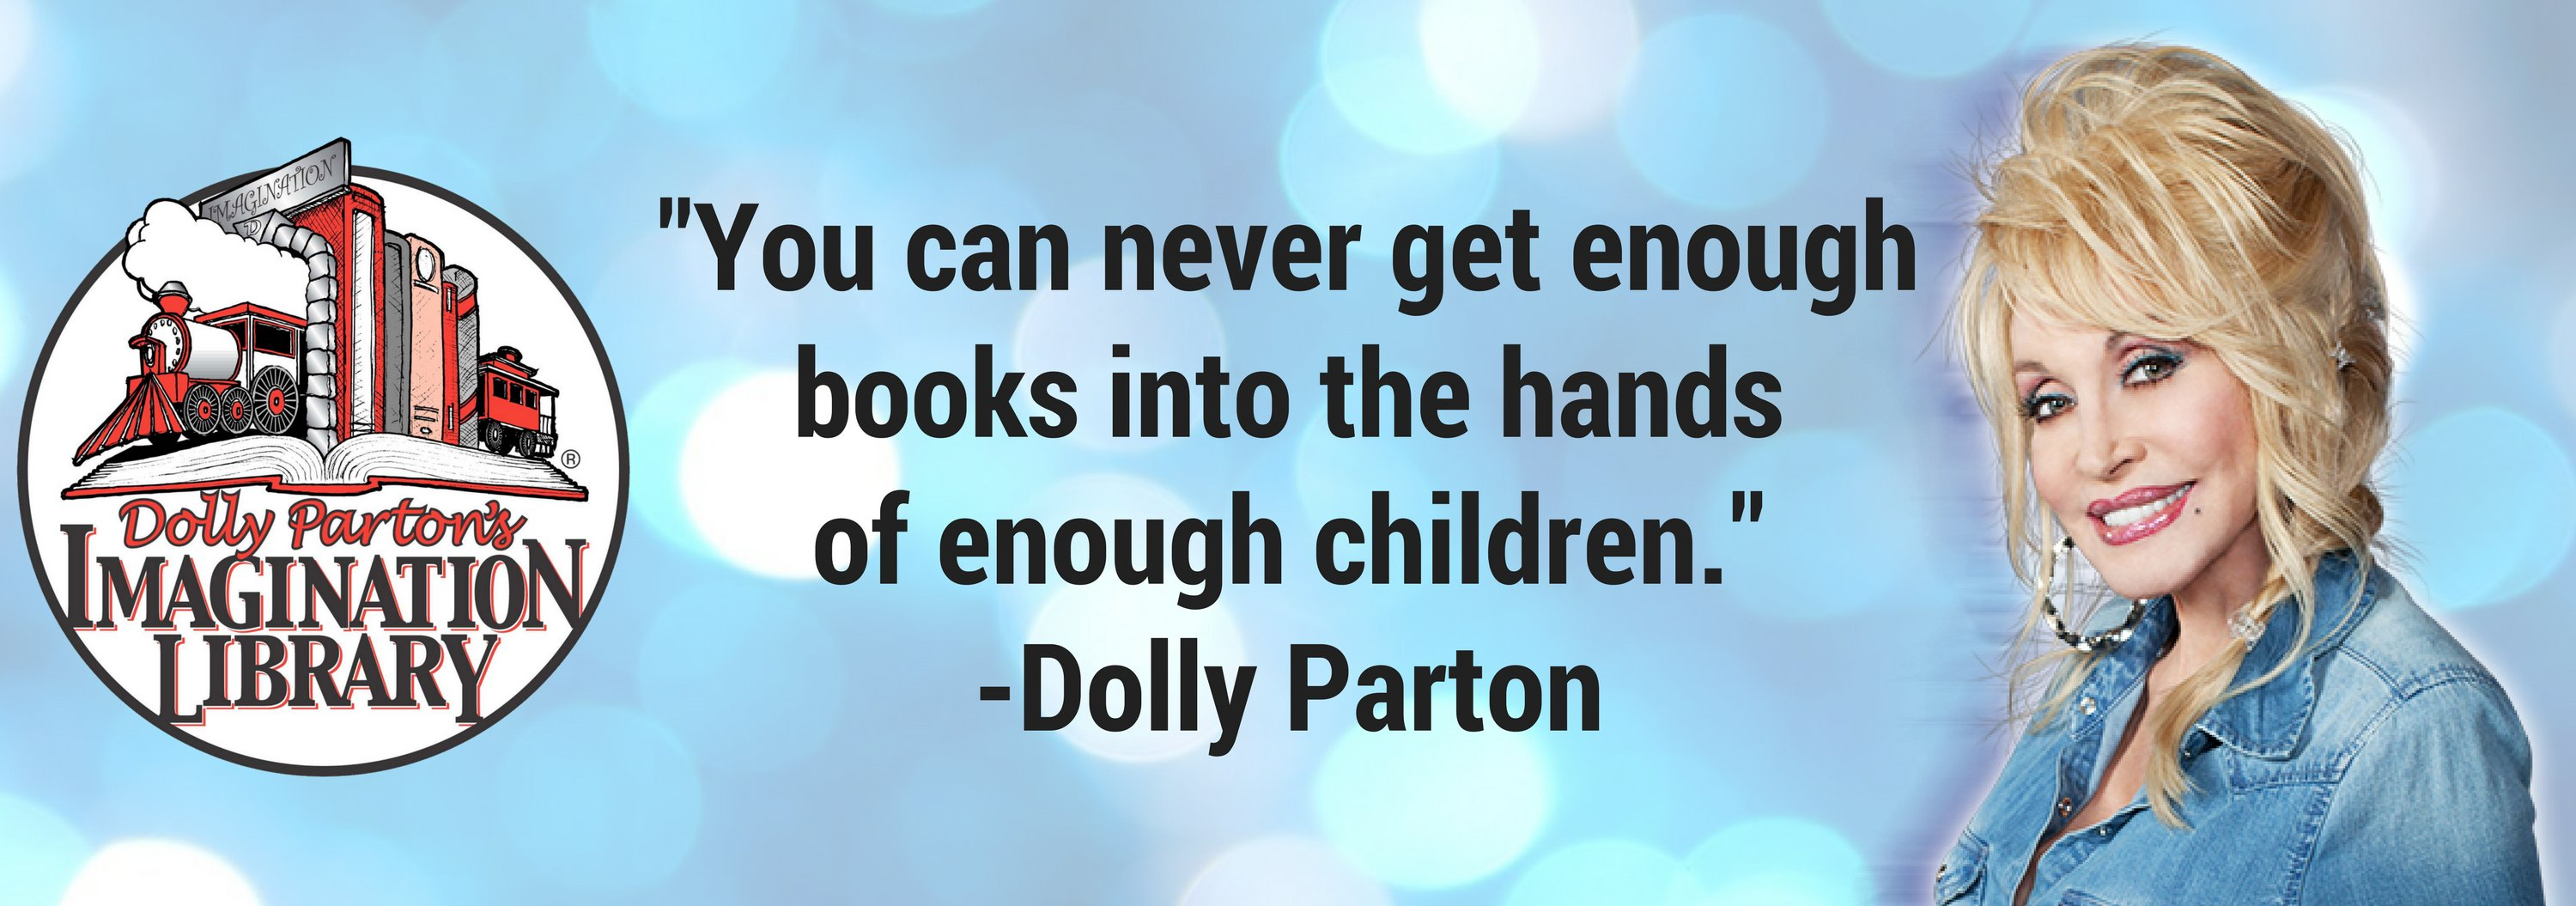 dolly4 - Dolly Parton Finally Realizes Life Book-giving Milestone Years After She Began The Journey